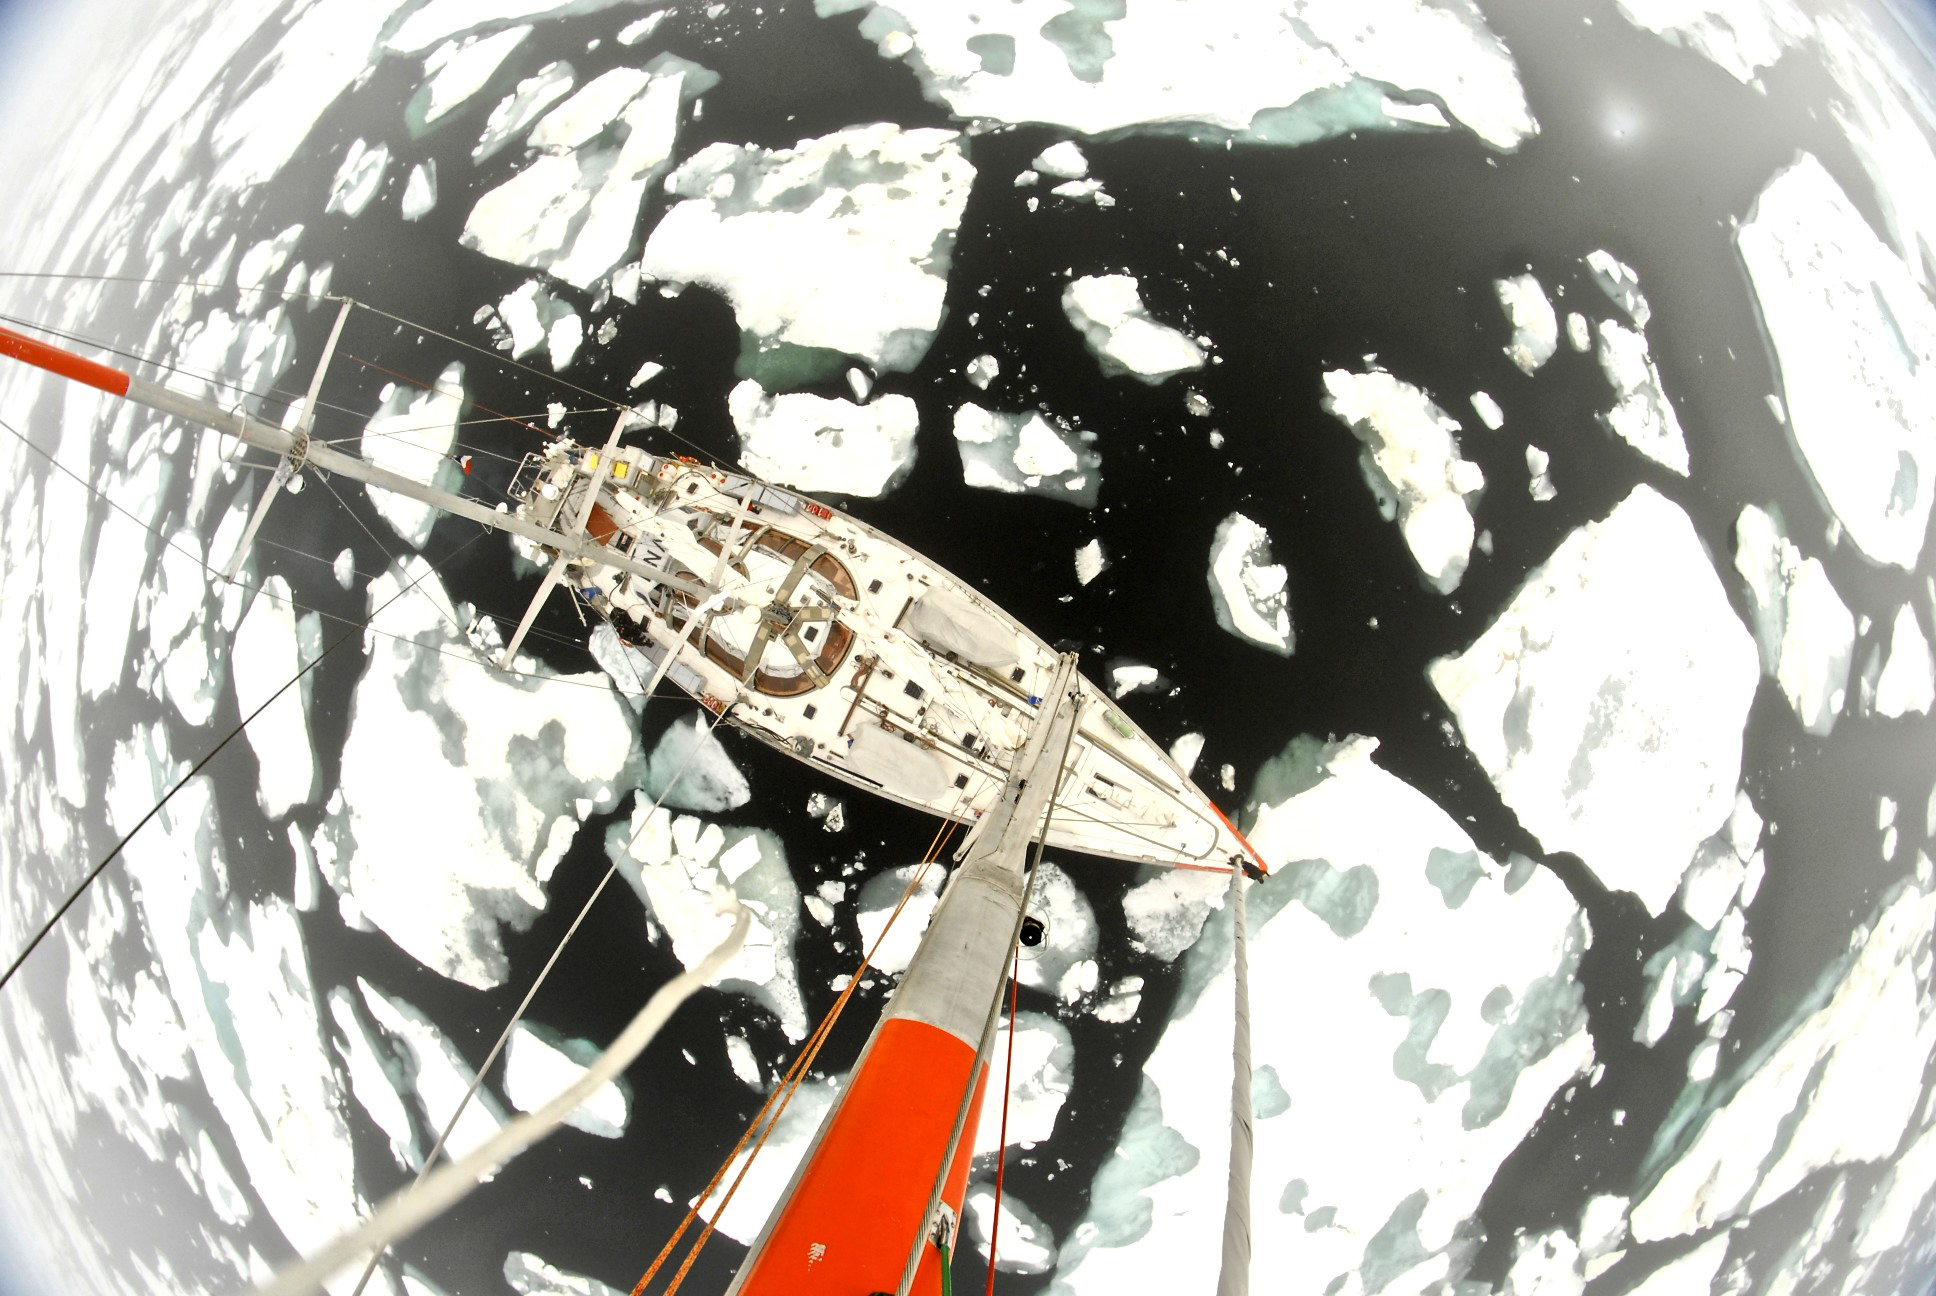 A masts-eye view of the Tara research vessel navigating through the ice. Photo by Andres Cozar